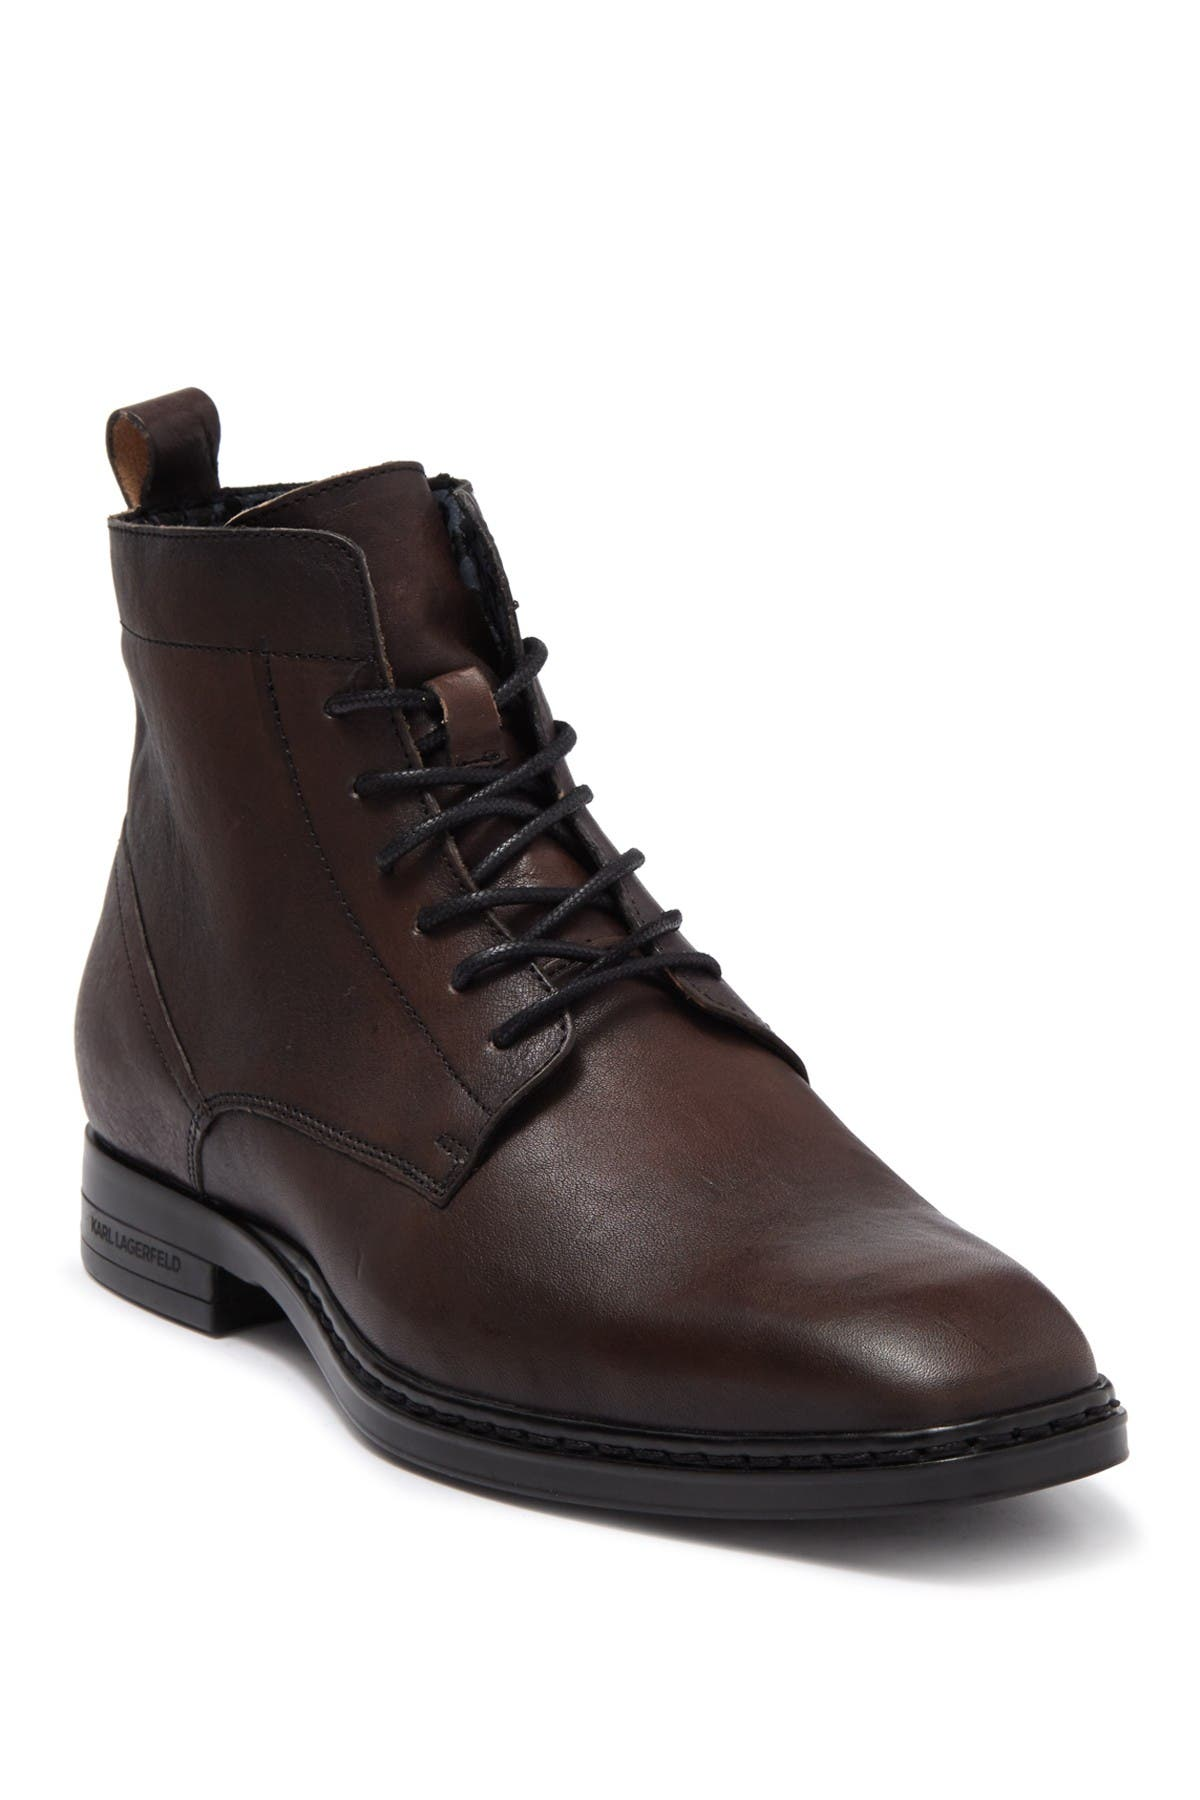 Image of Karl Lagerfeld Paris Burnished Leather Boot